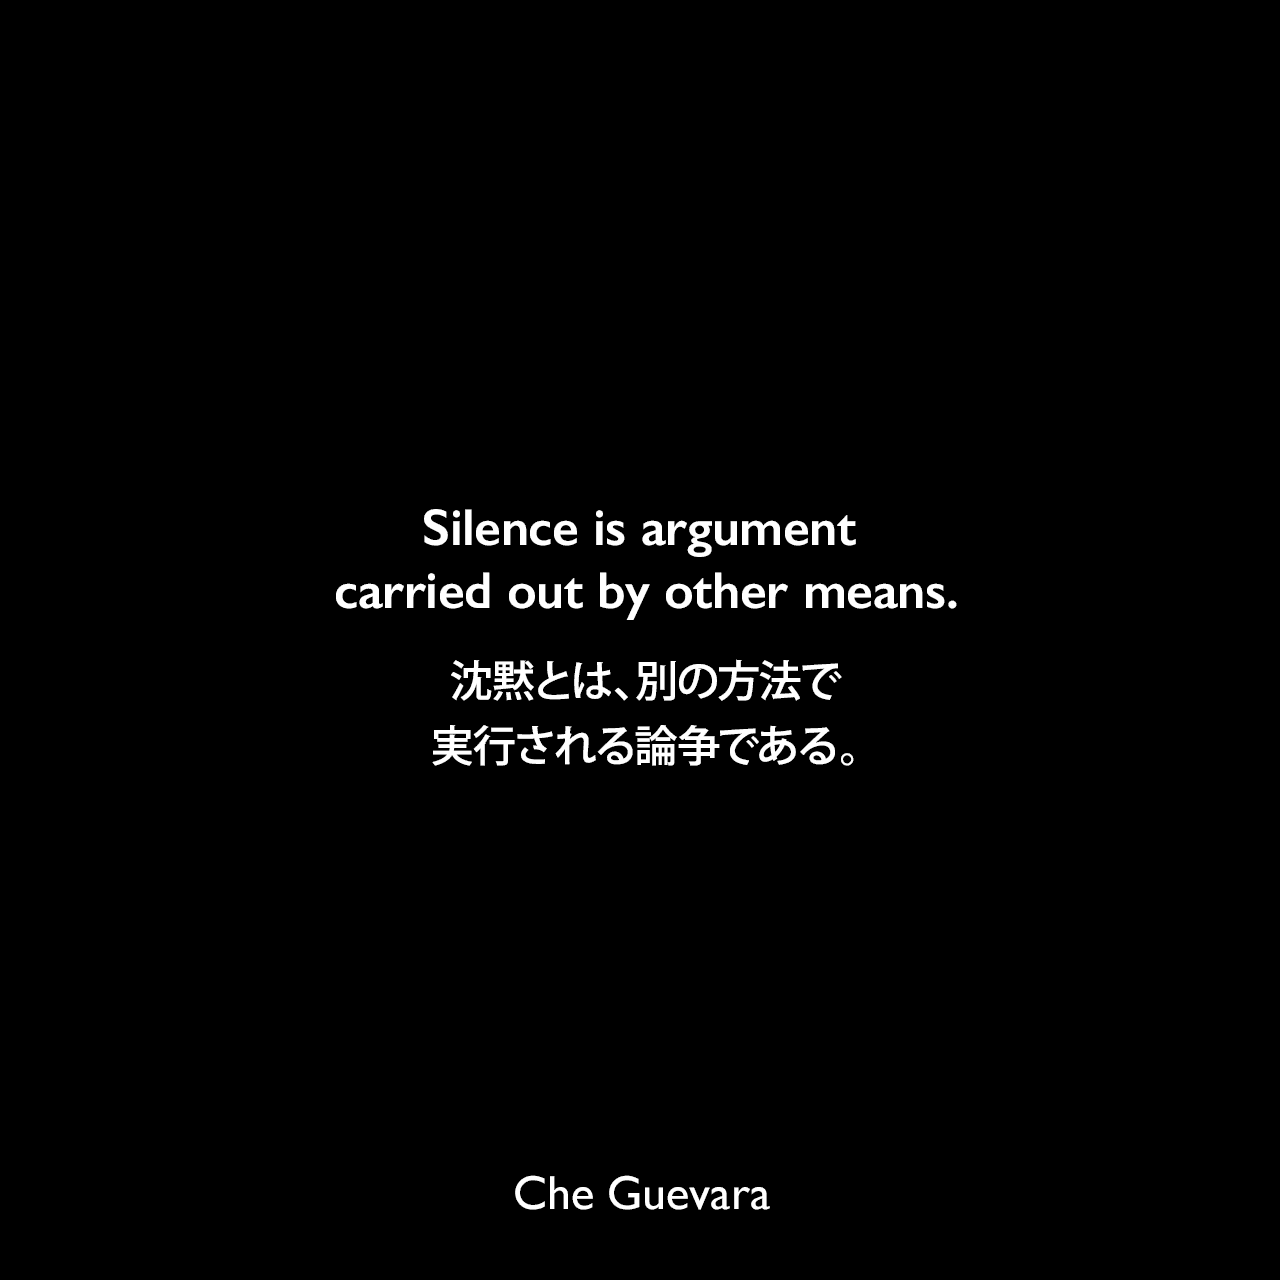 Silence is argument carried out by other means.沈黙とは、別の方法で実行される論争である。- アール・アーネスト・グイルによる本「Secrets to a Richer Life: Illuminating Wisdom from the Human Family on the 12 Ultimate Questions」よりChe Guevara